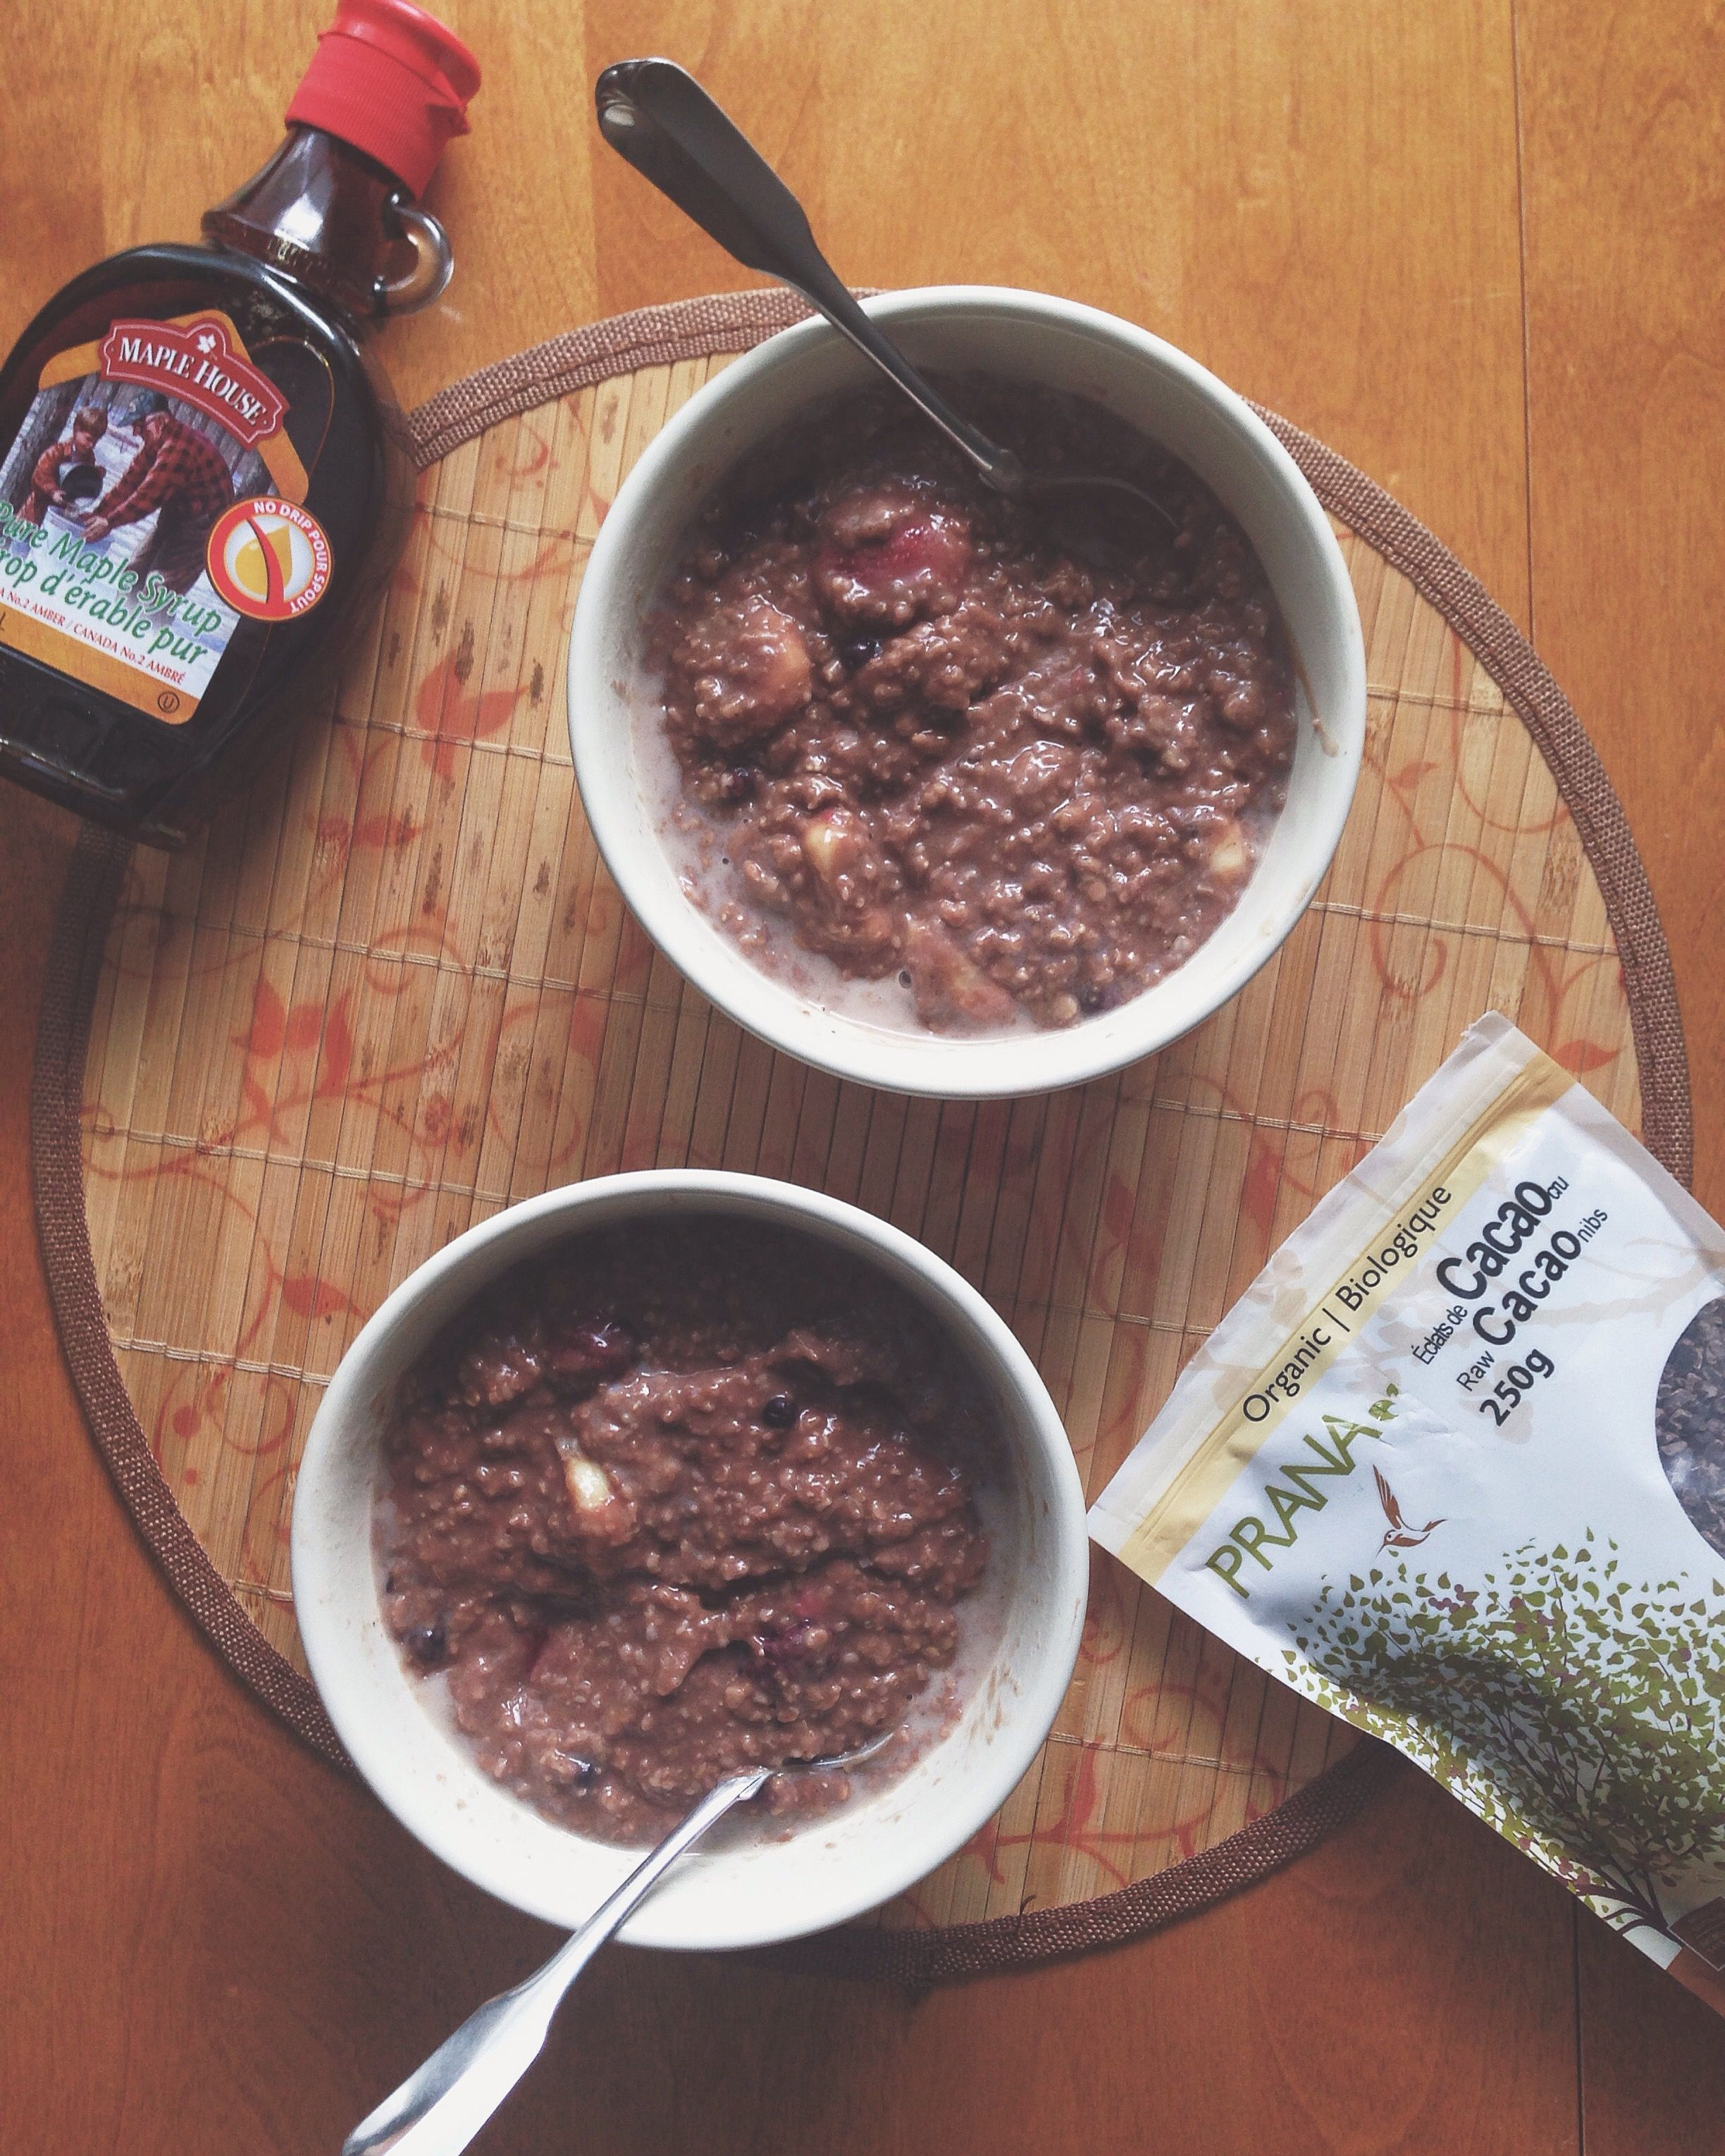 Recipe: Chocolate Oatmeal